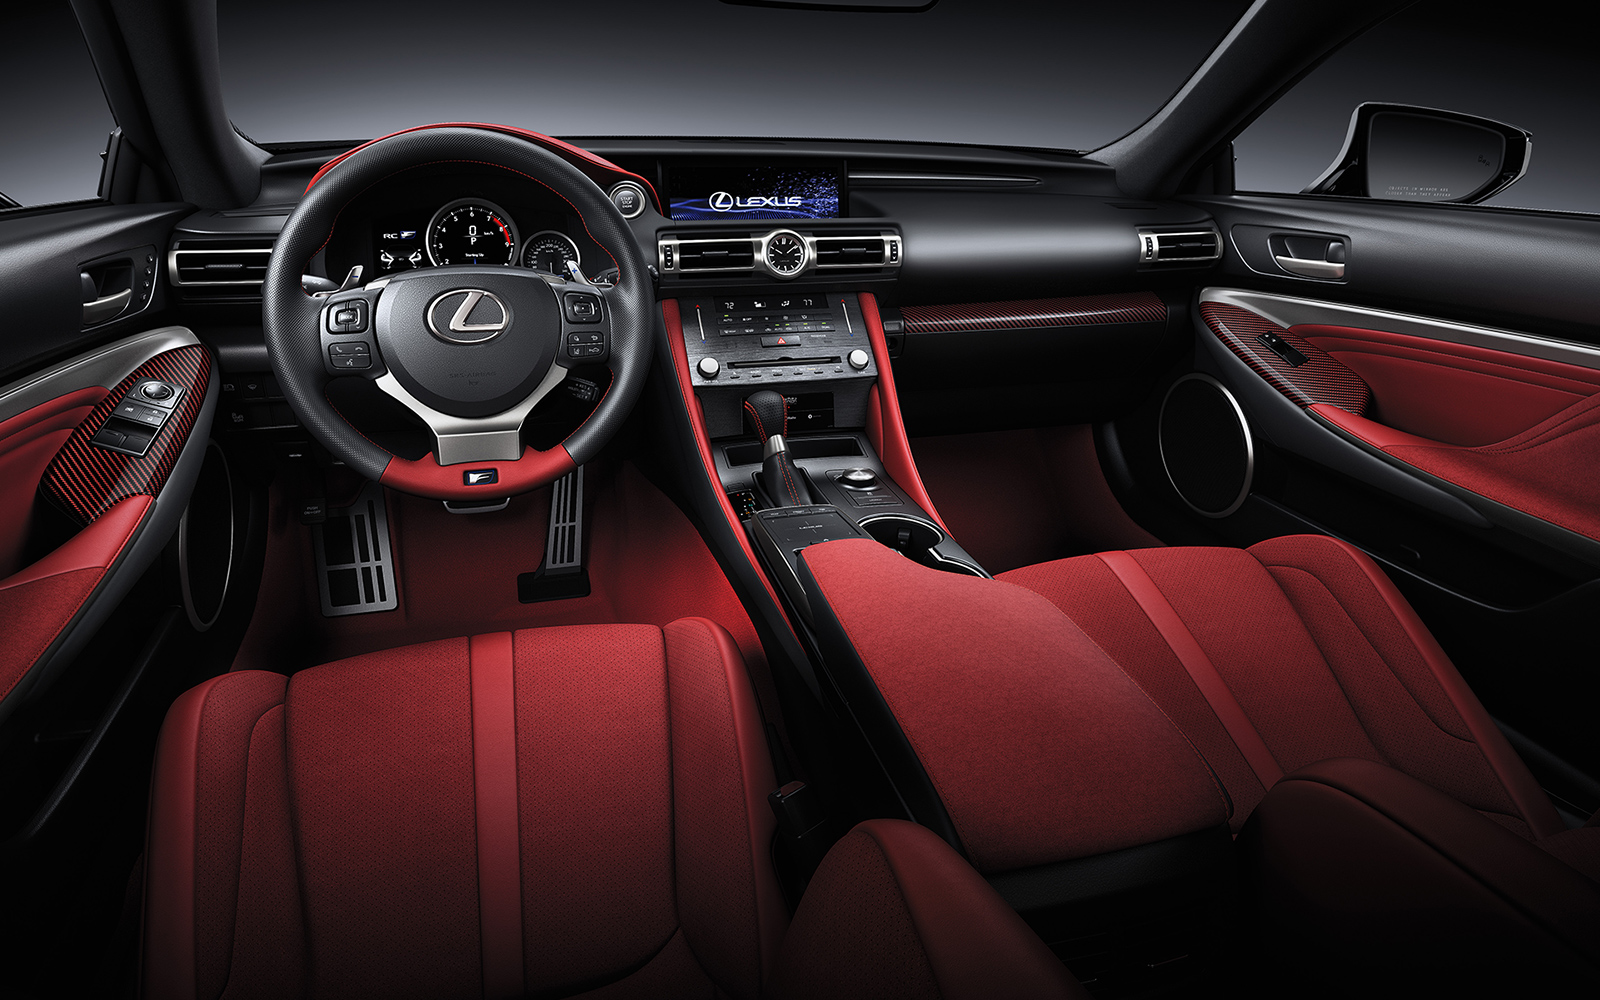 Lexus 2020 Rcf Track Red Interior Steering L